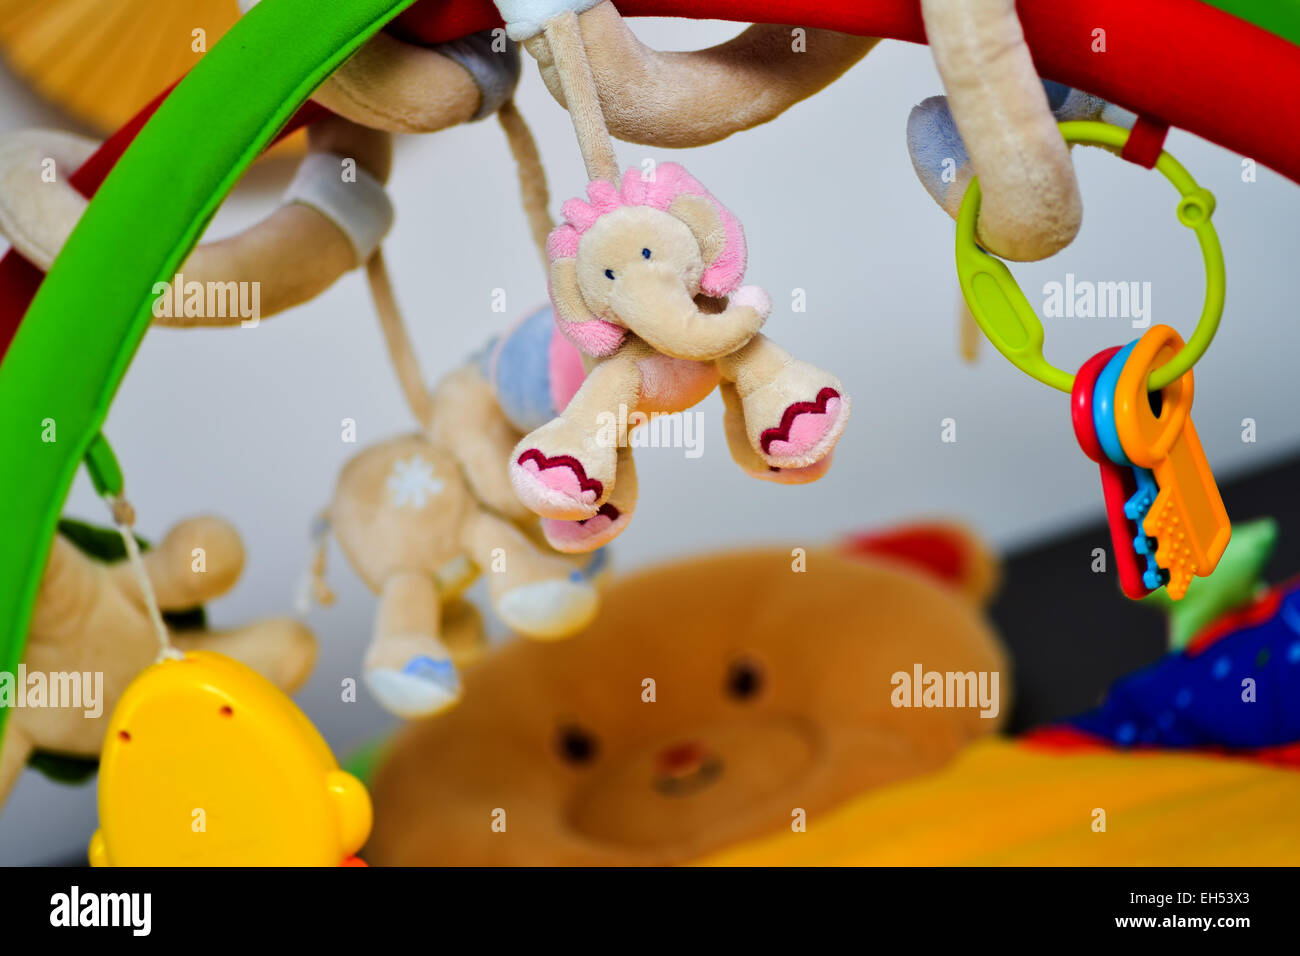 Elephant Plush Toy for Newborns with a colored background toys - Stock Image